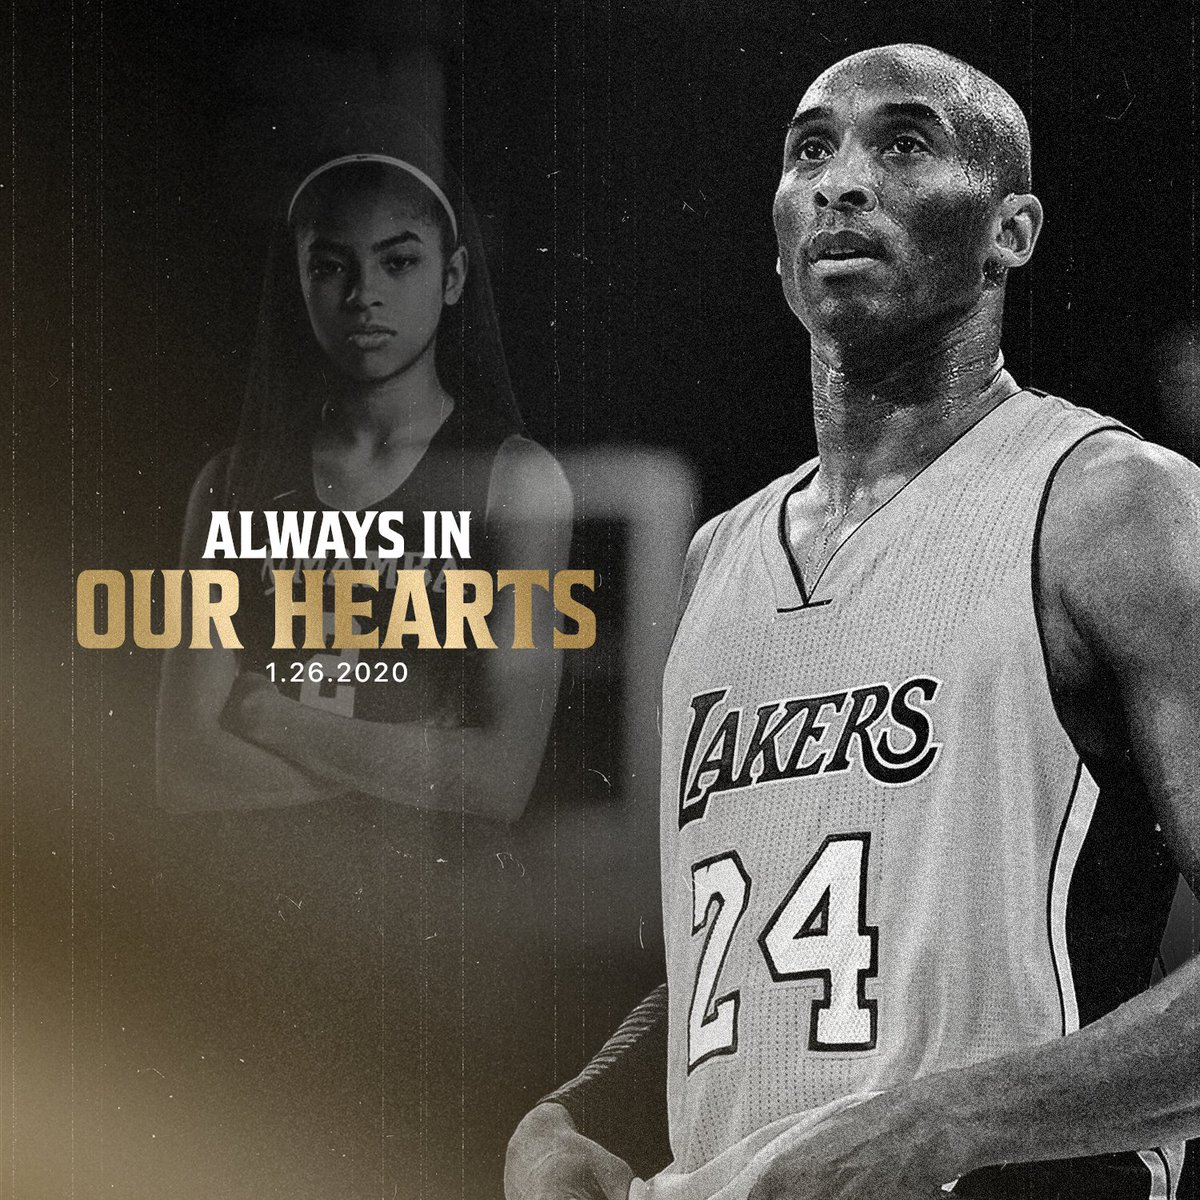 """""""Heroes come and go, but legends are forever.""""  Remembering Kobe, Gigi, and everyone who lost their lives in that tragic accident a year ago. Rest in peace.  #MambaForever #KobeBryant"""